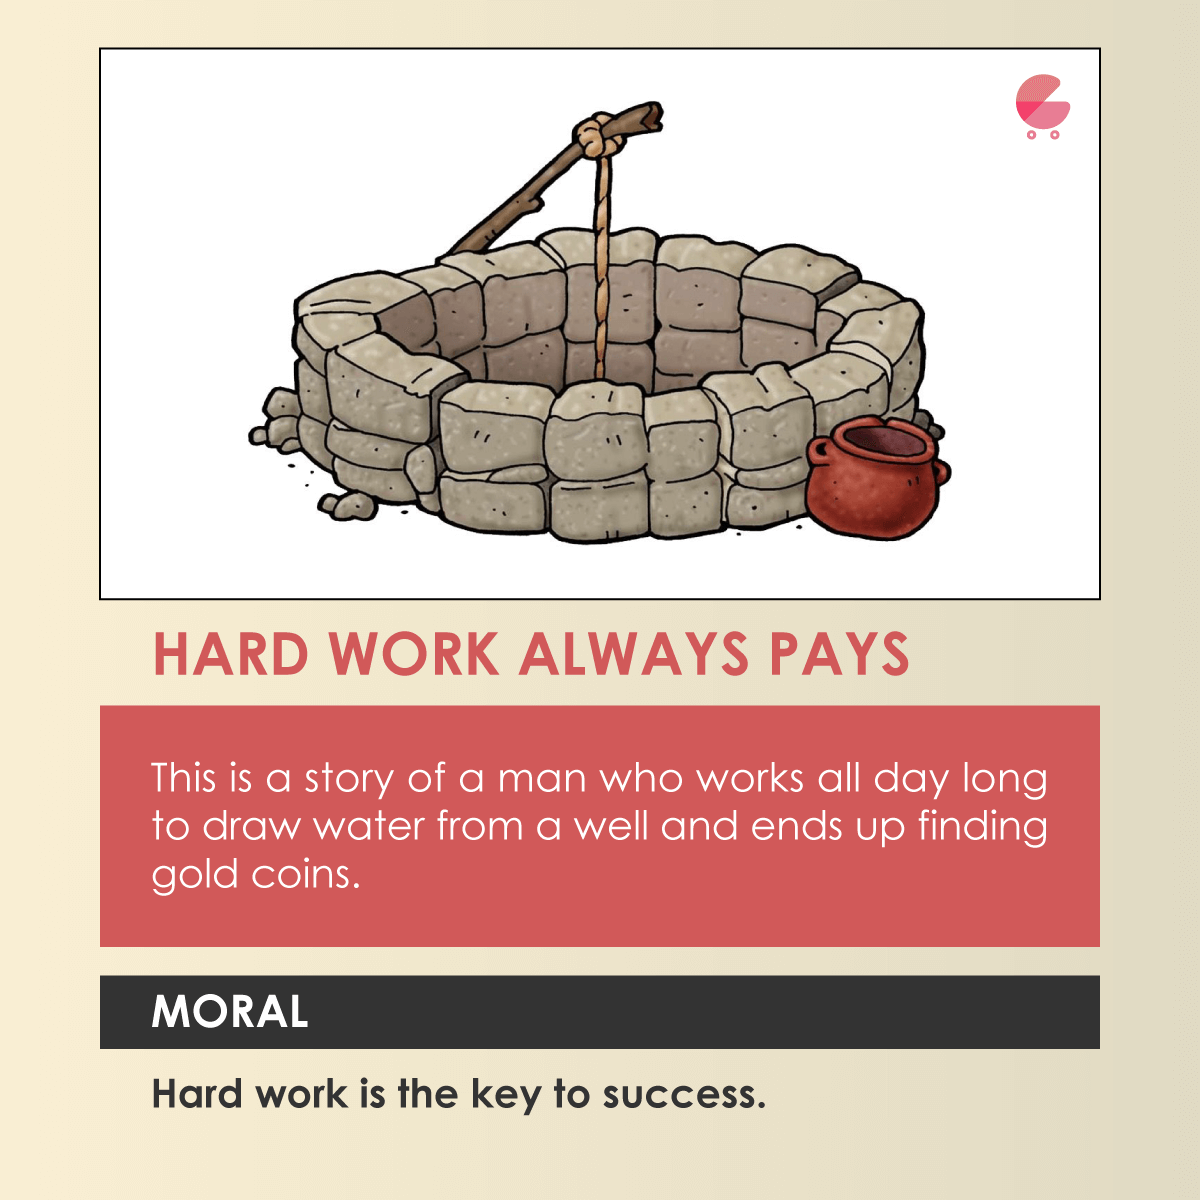 hard work always pays